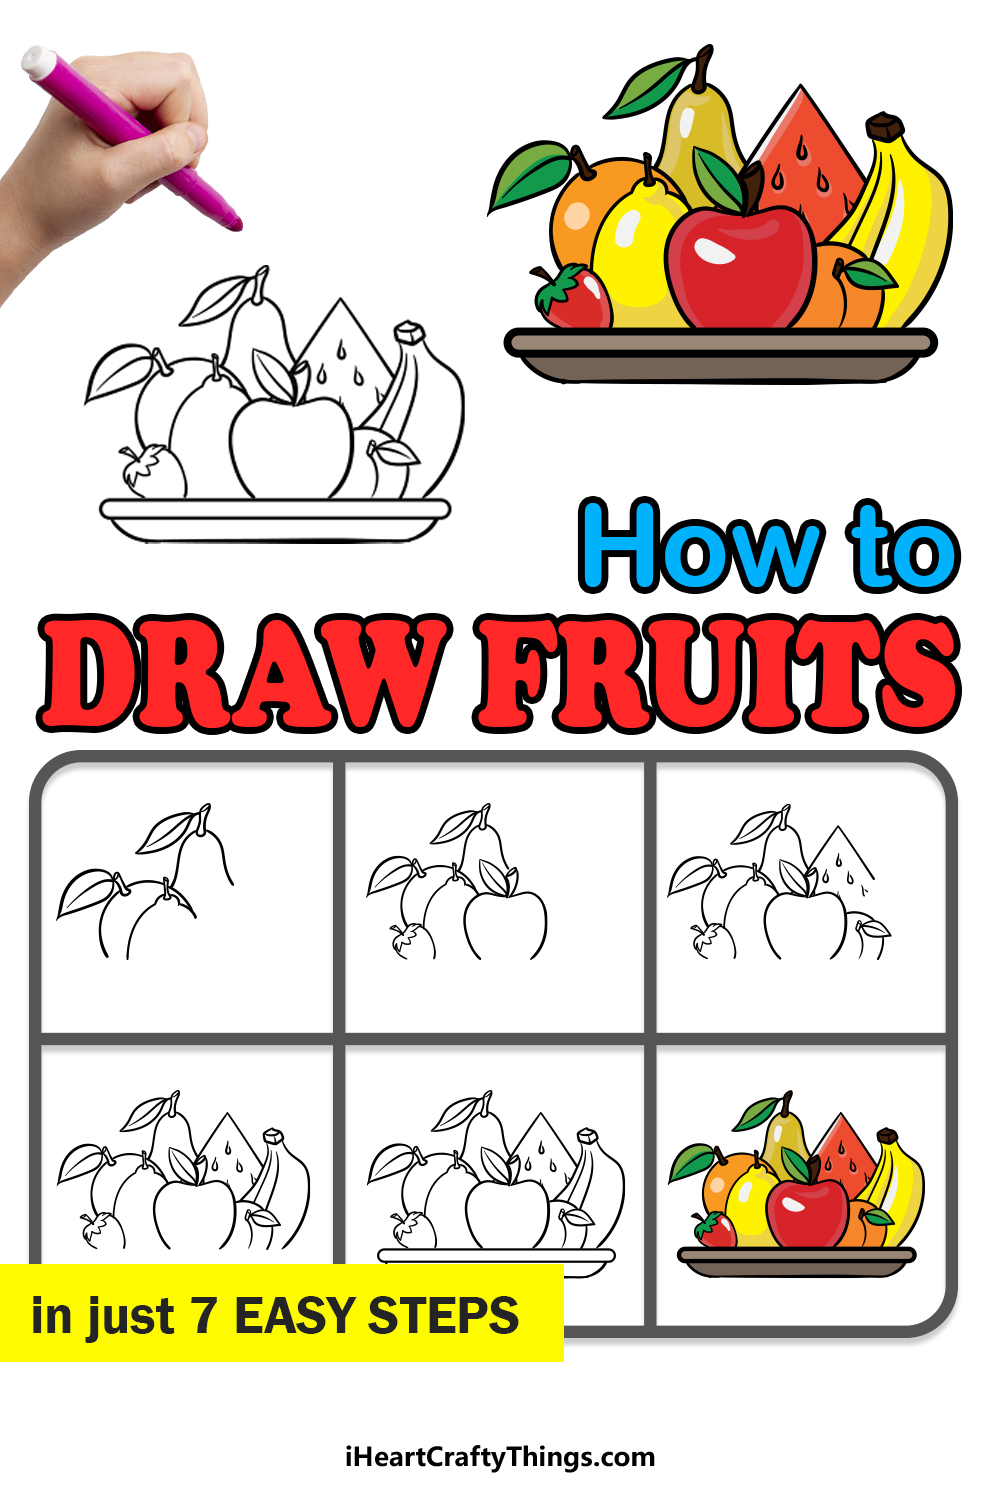 how to draw fruits in 7 easy steps